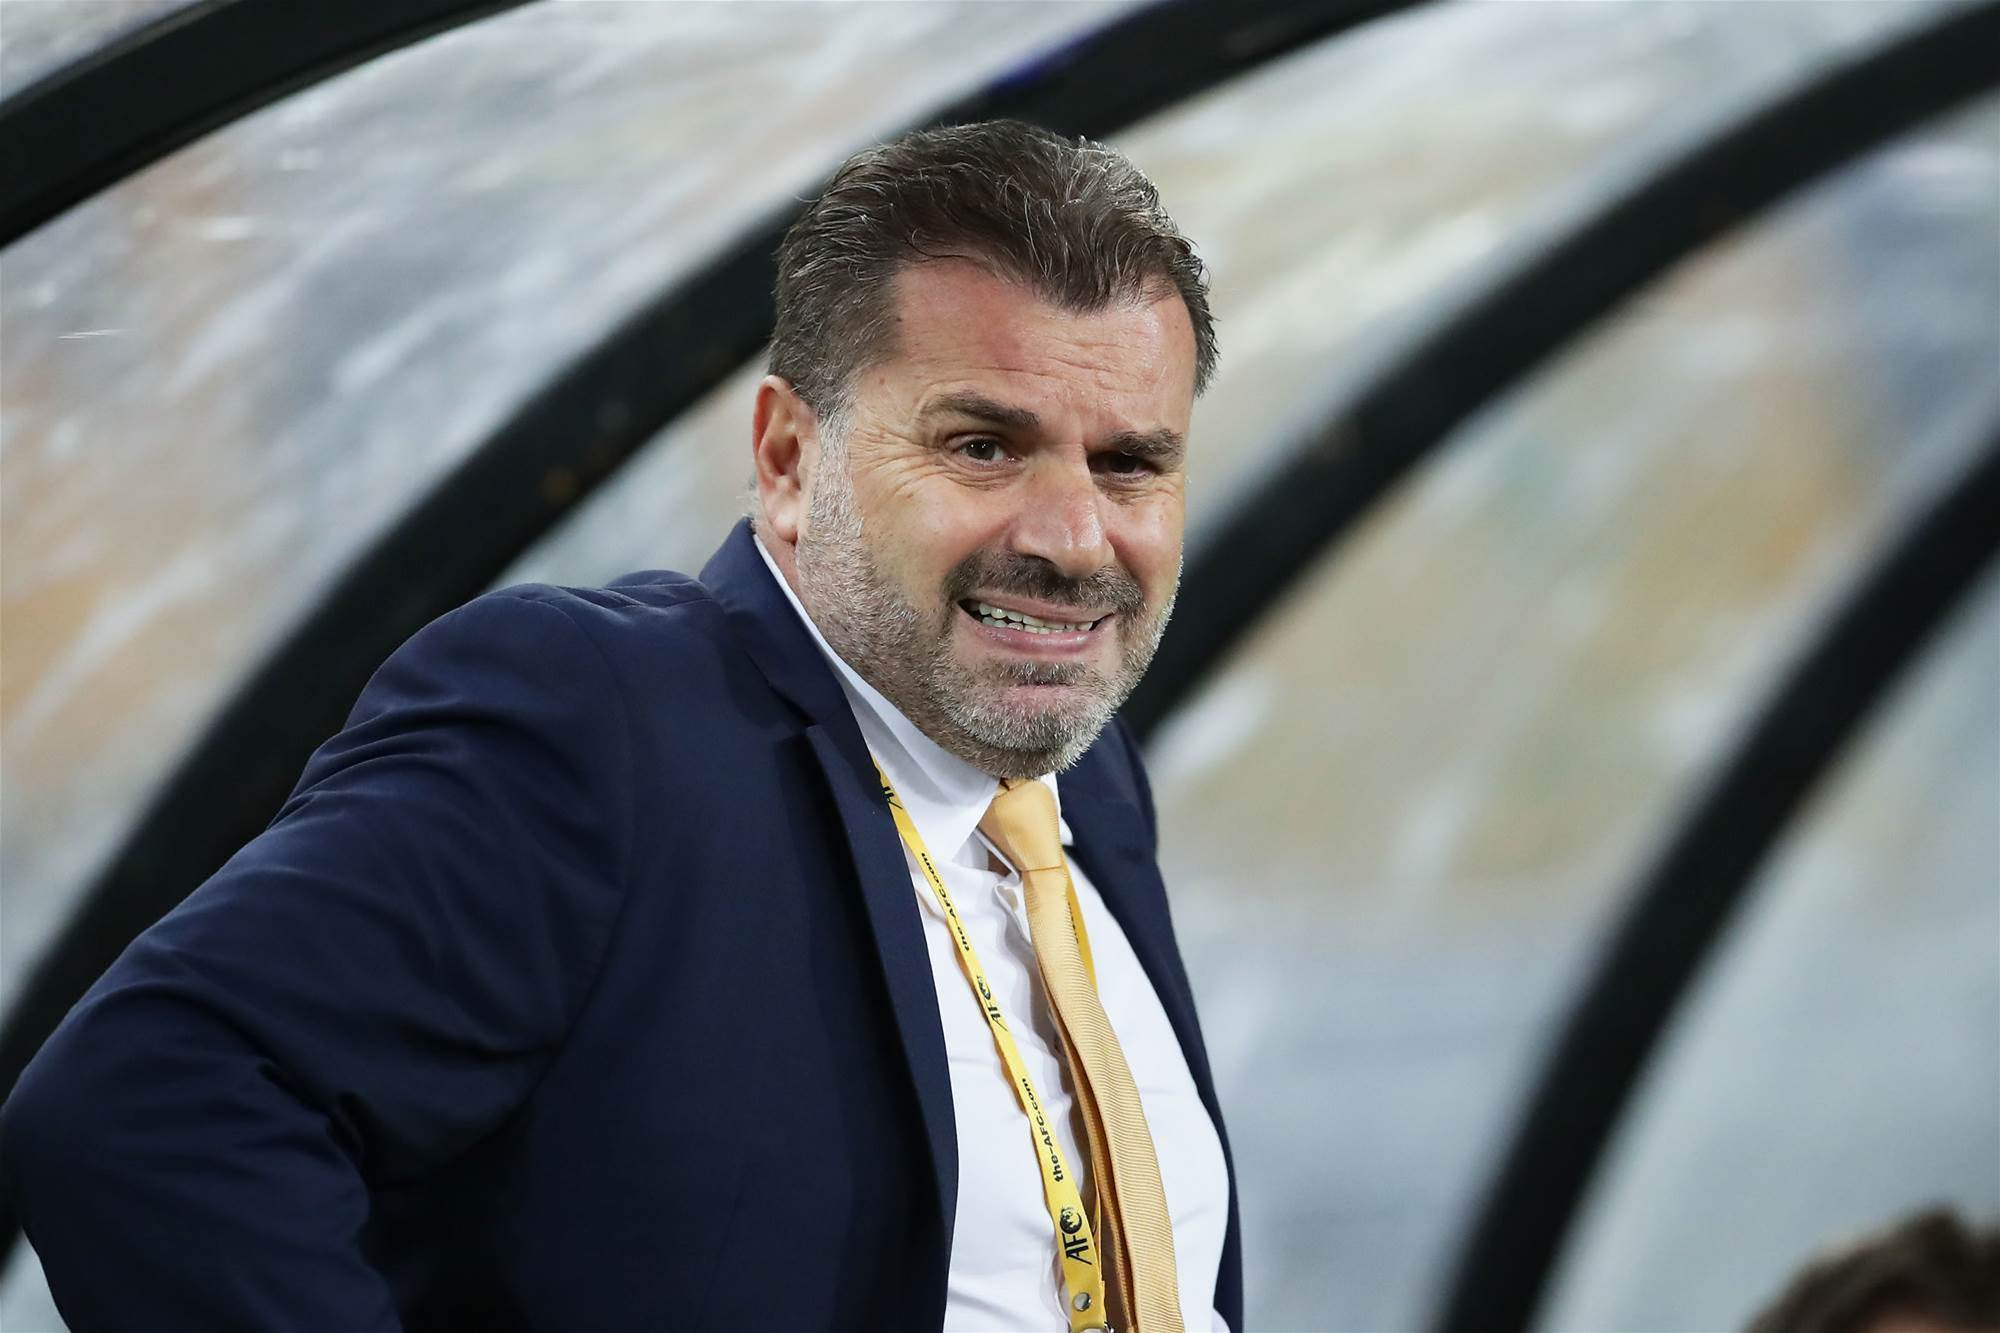 Ange: It's all about Honduras